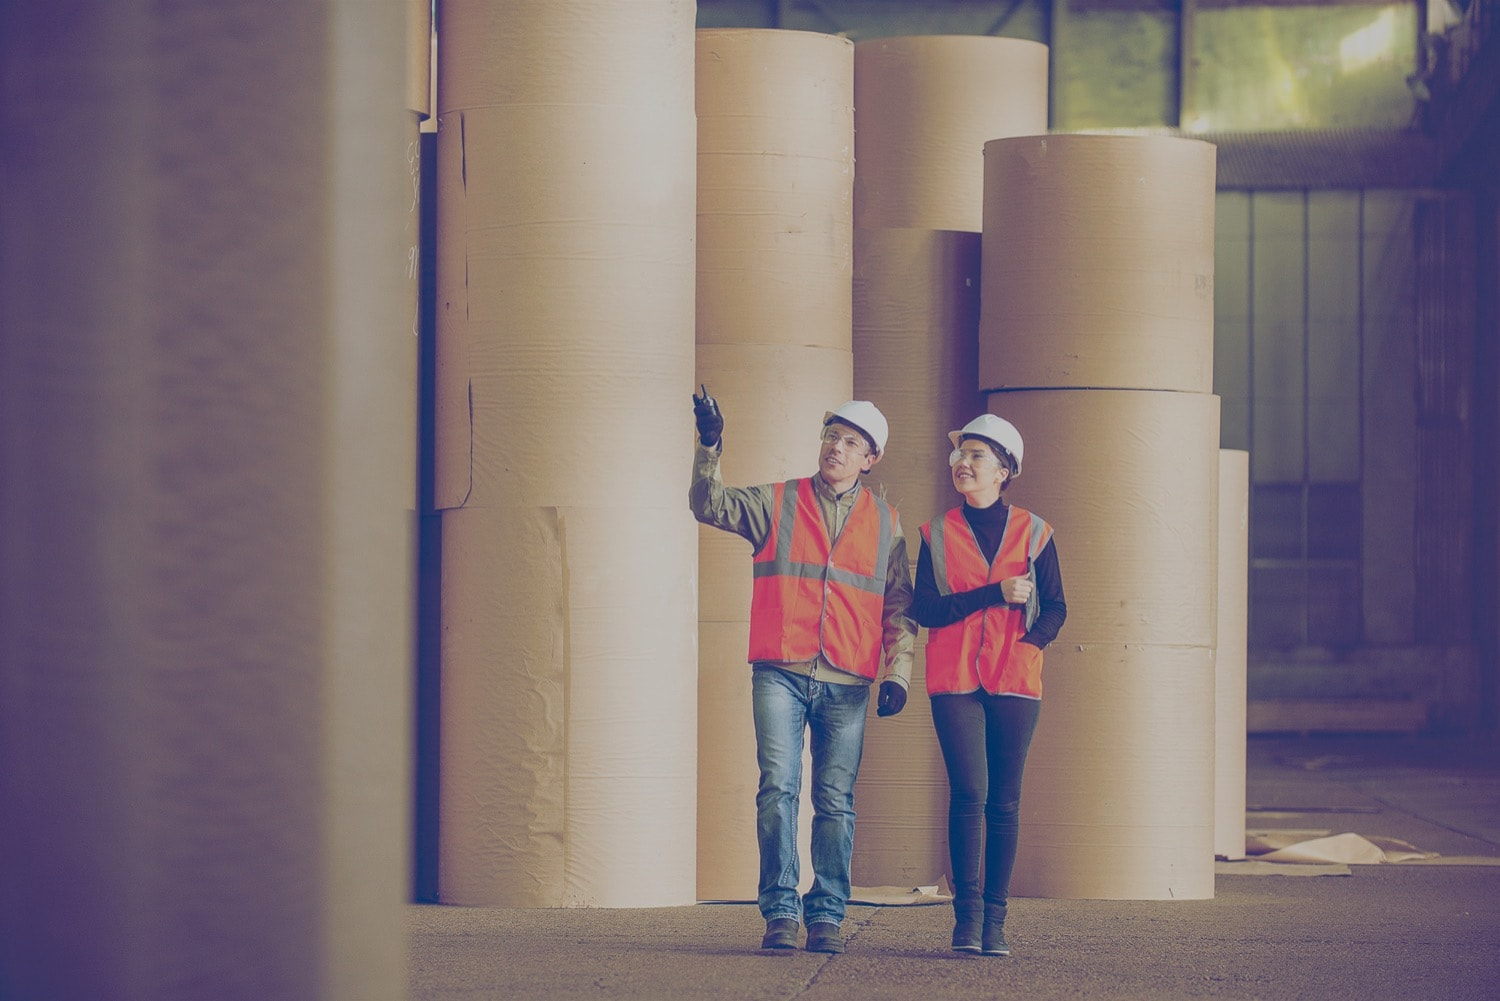 Two people in hardhats walking through an industrial room with rolls of carpets.